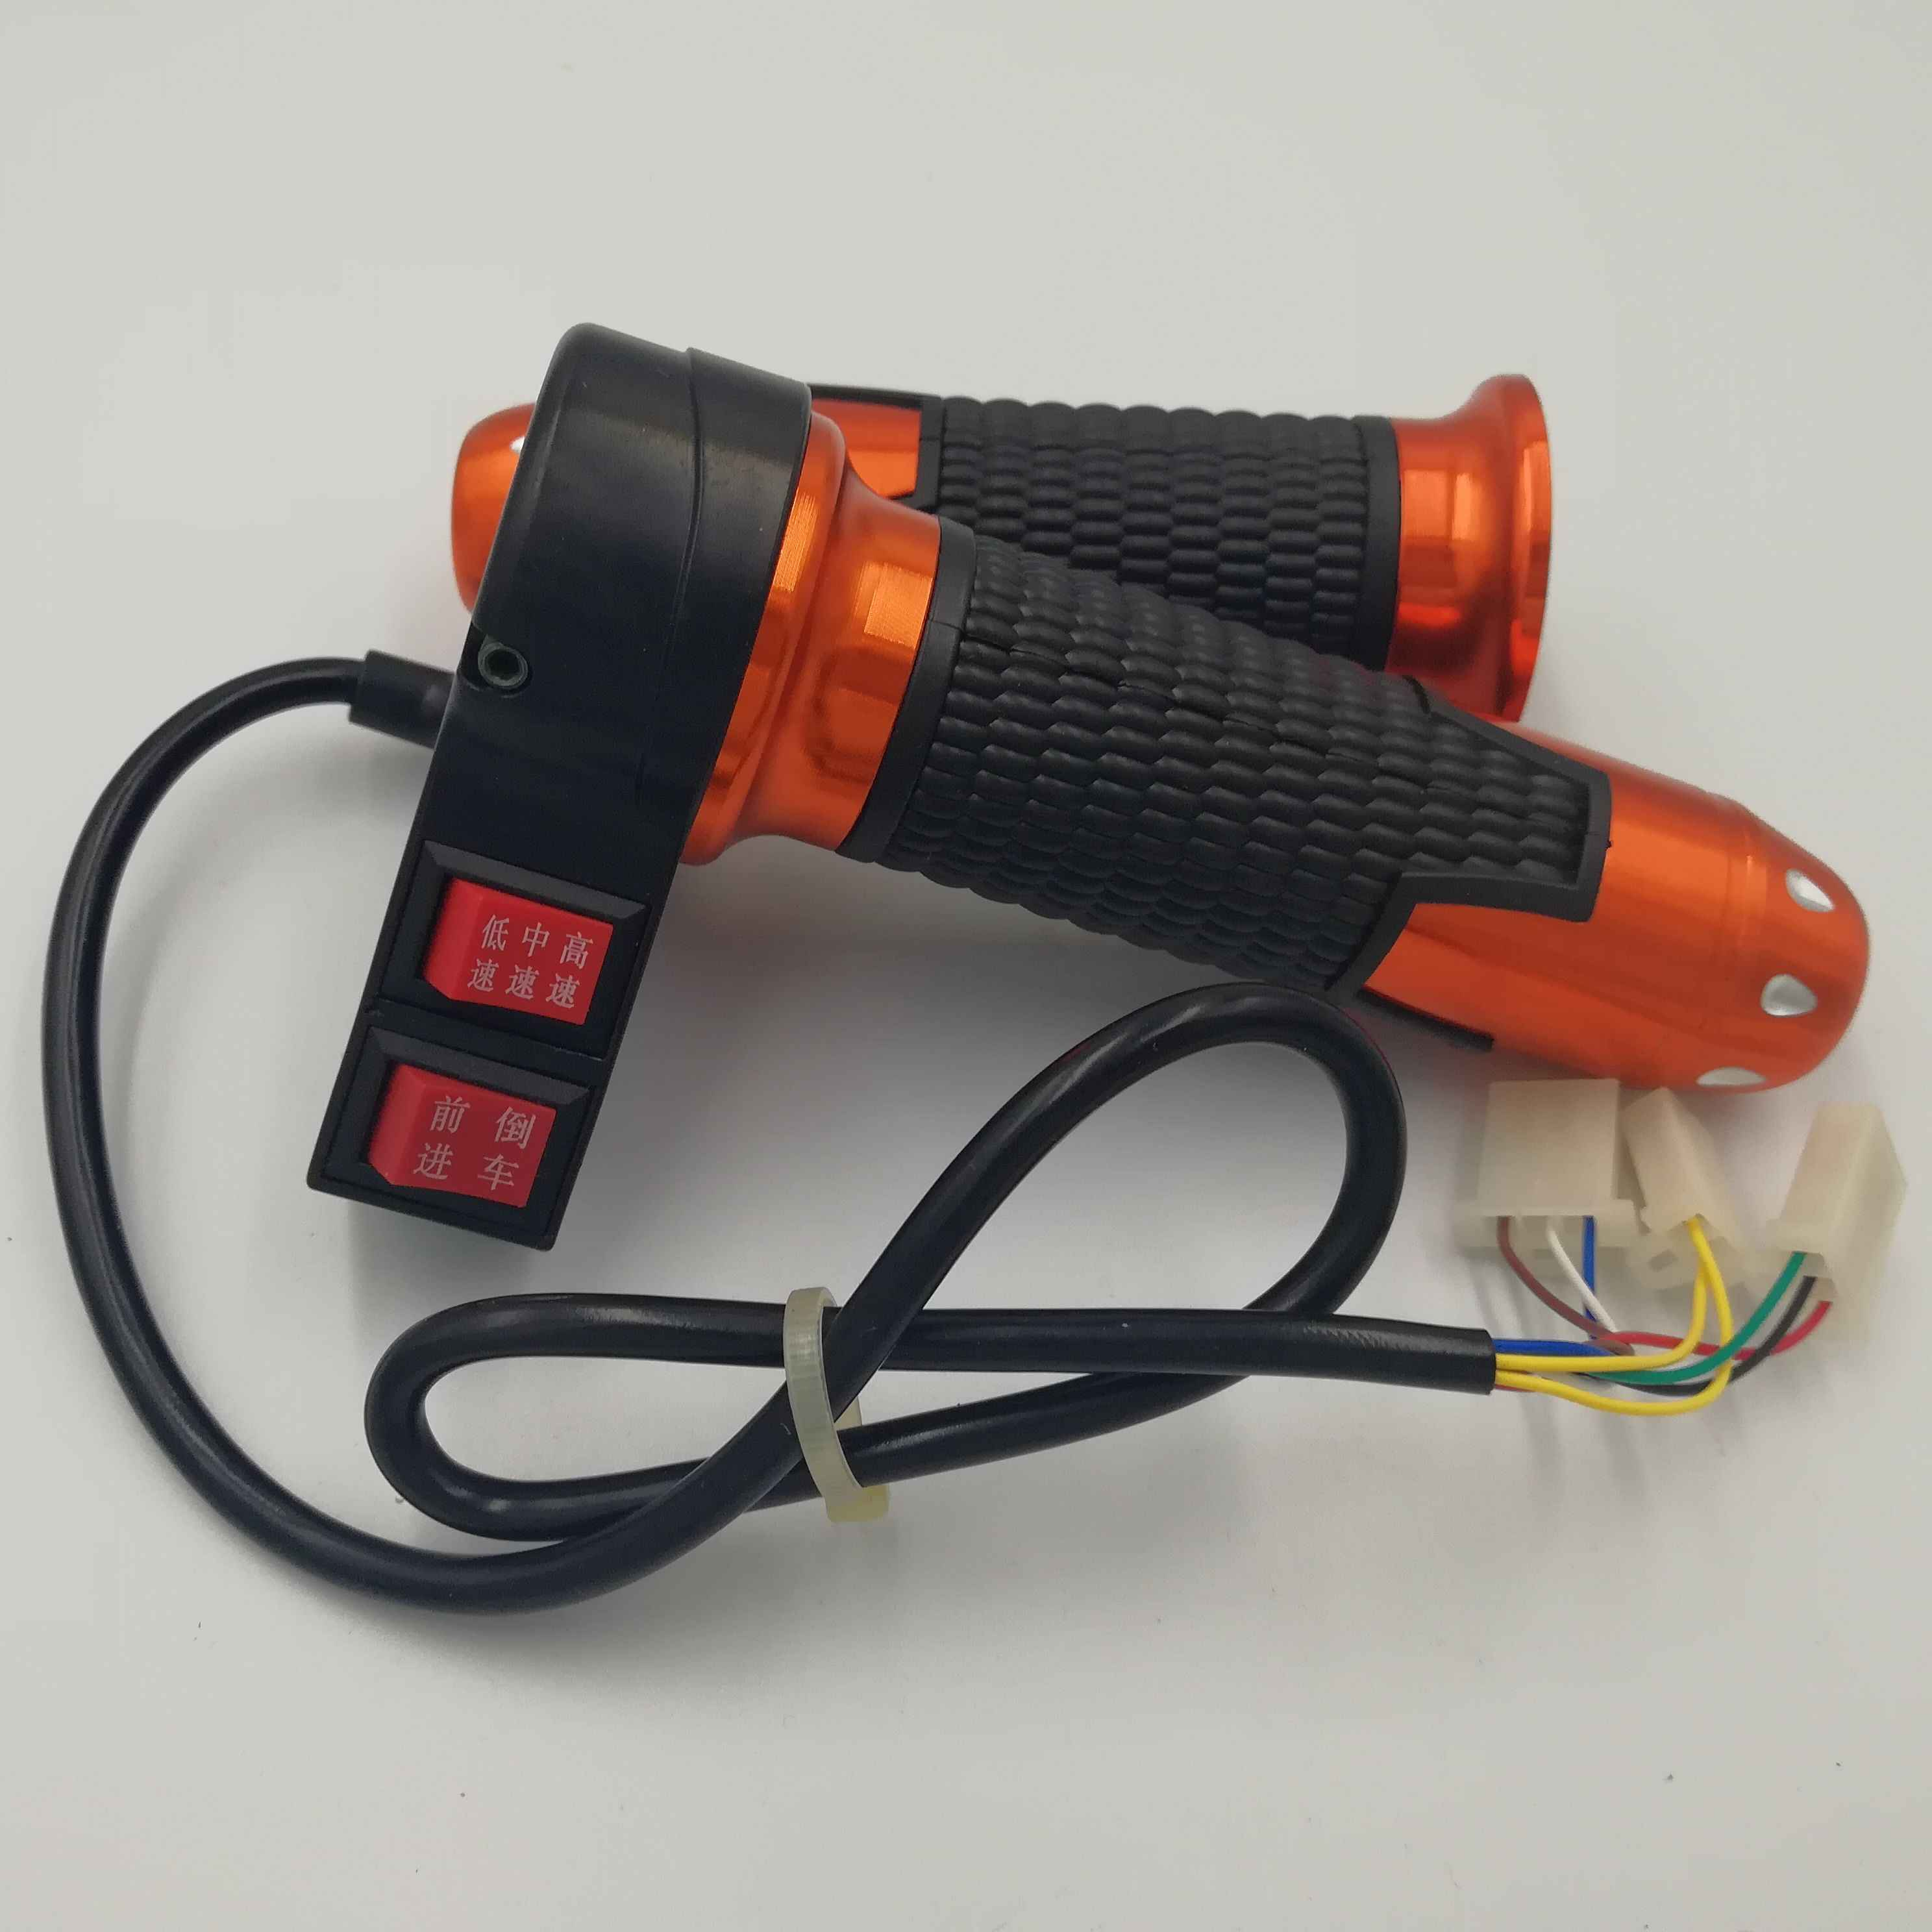 Speed Control Handle For Electric Scooter Bike Throttle Grip Handlebar Black Hot